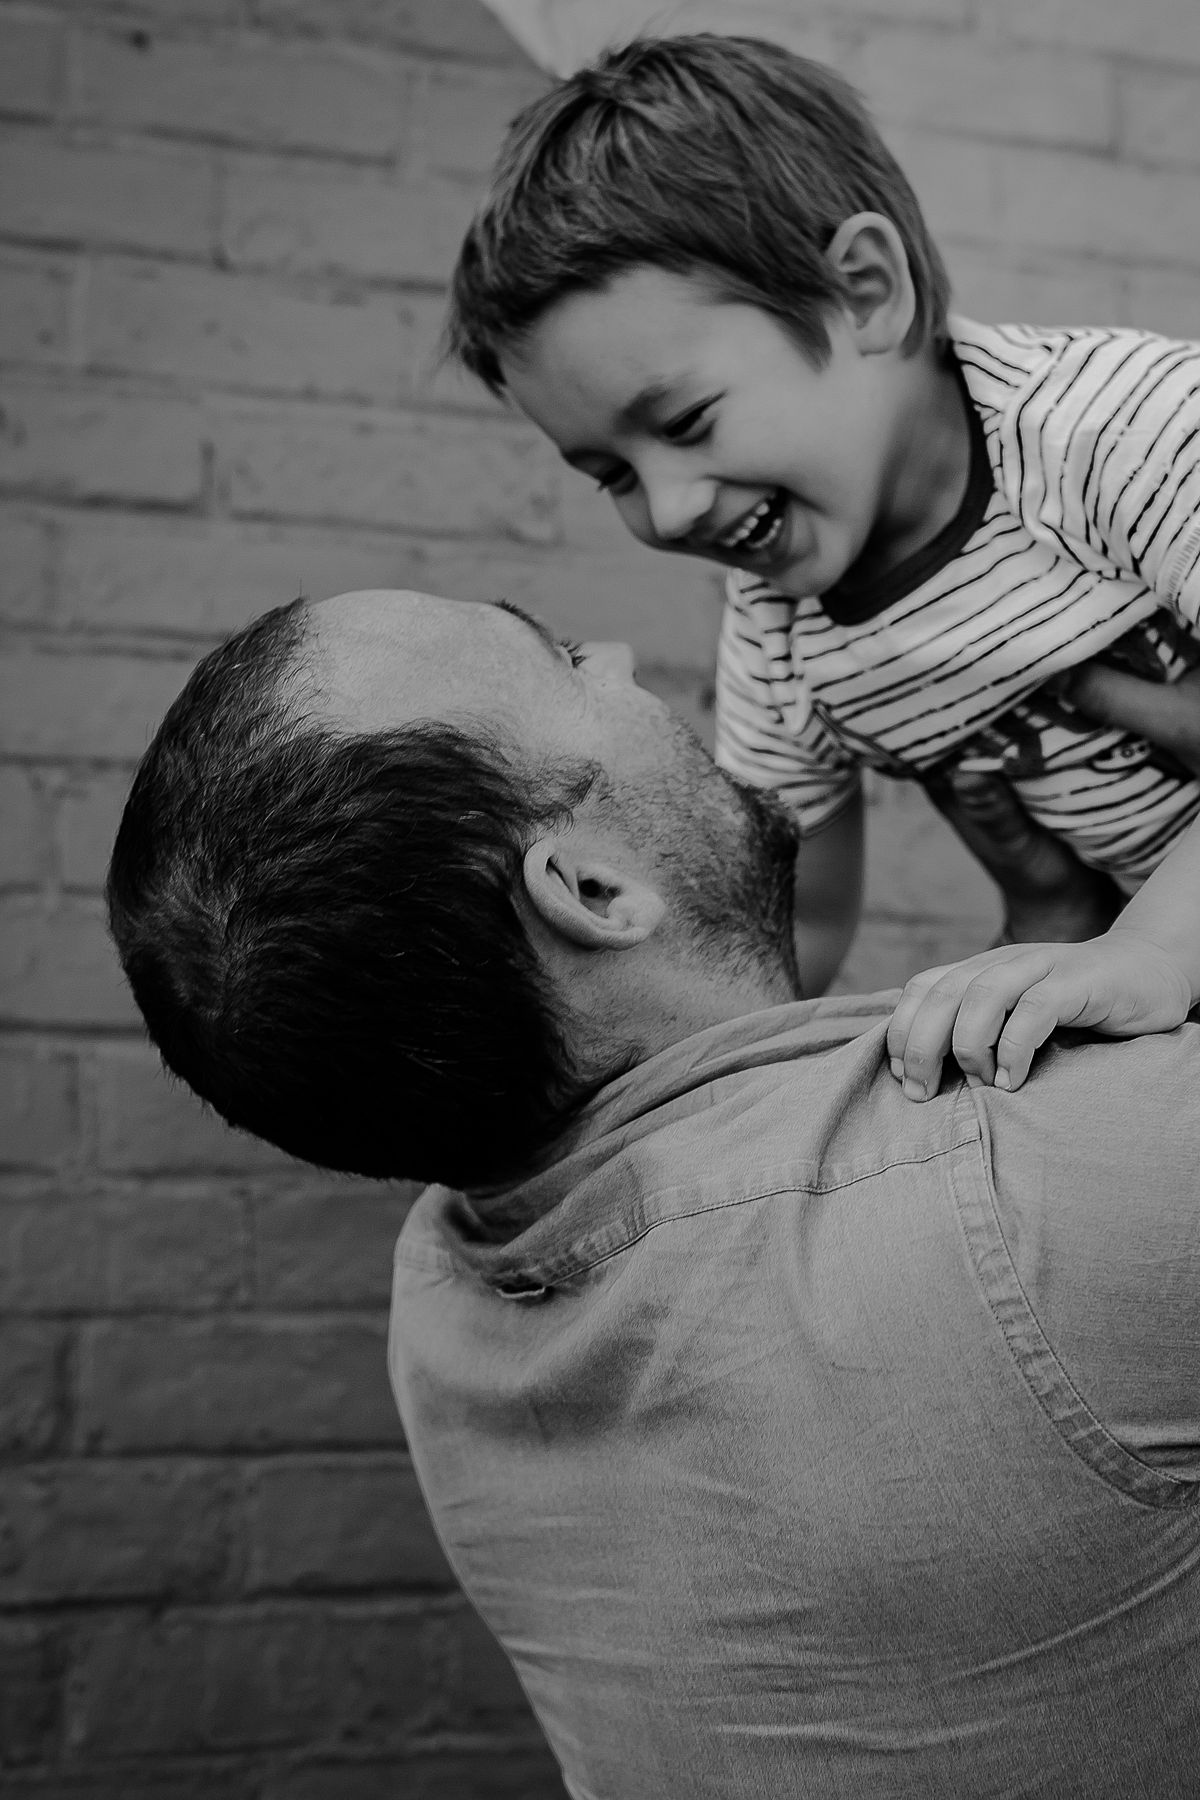 dad holds son in air and both laugh happily. image by nyc family photographer krystil mcdowall